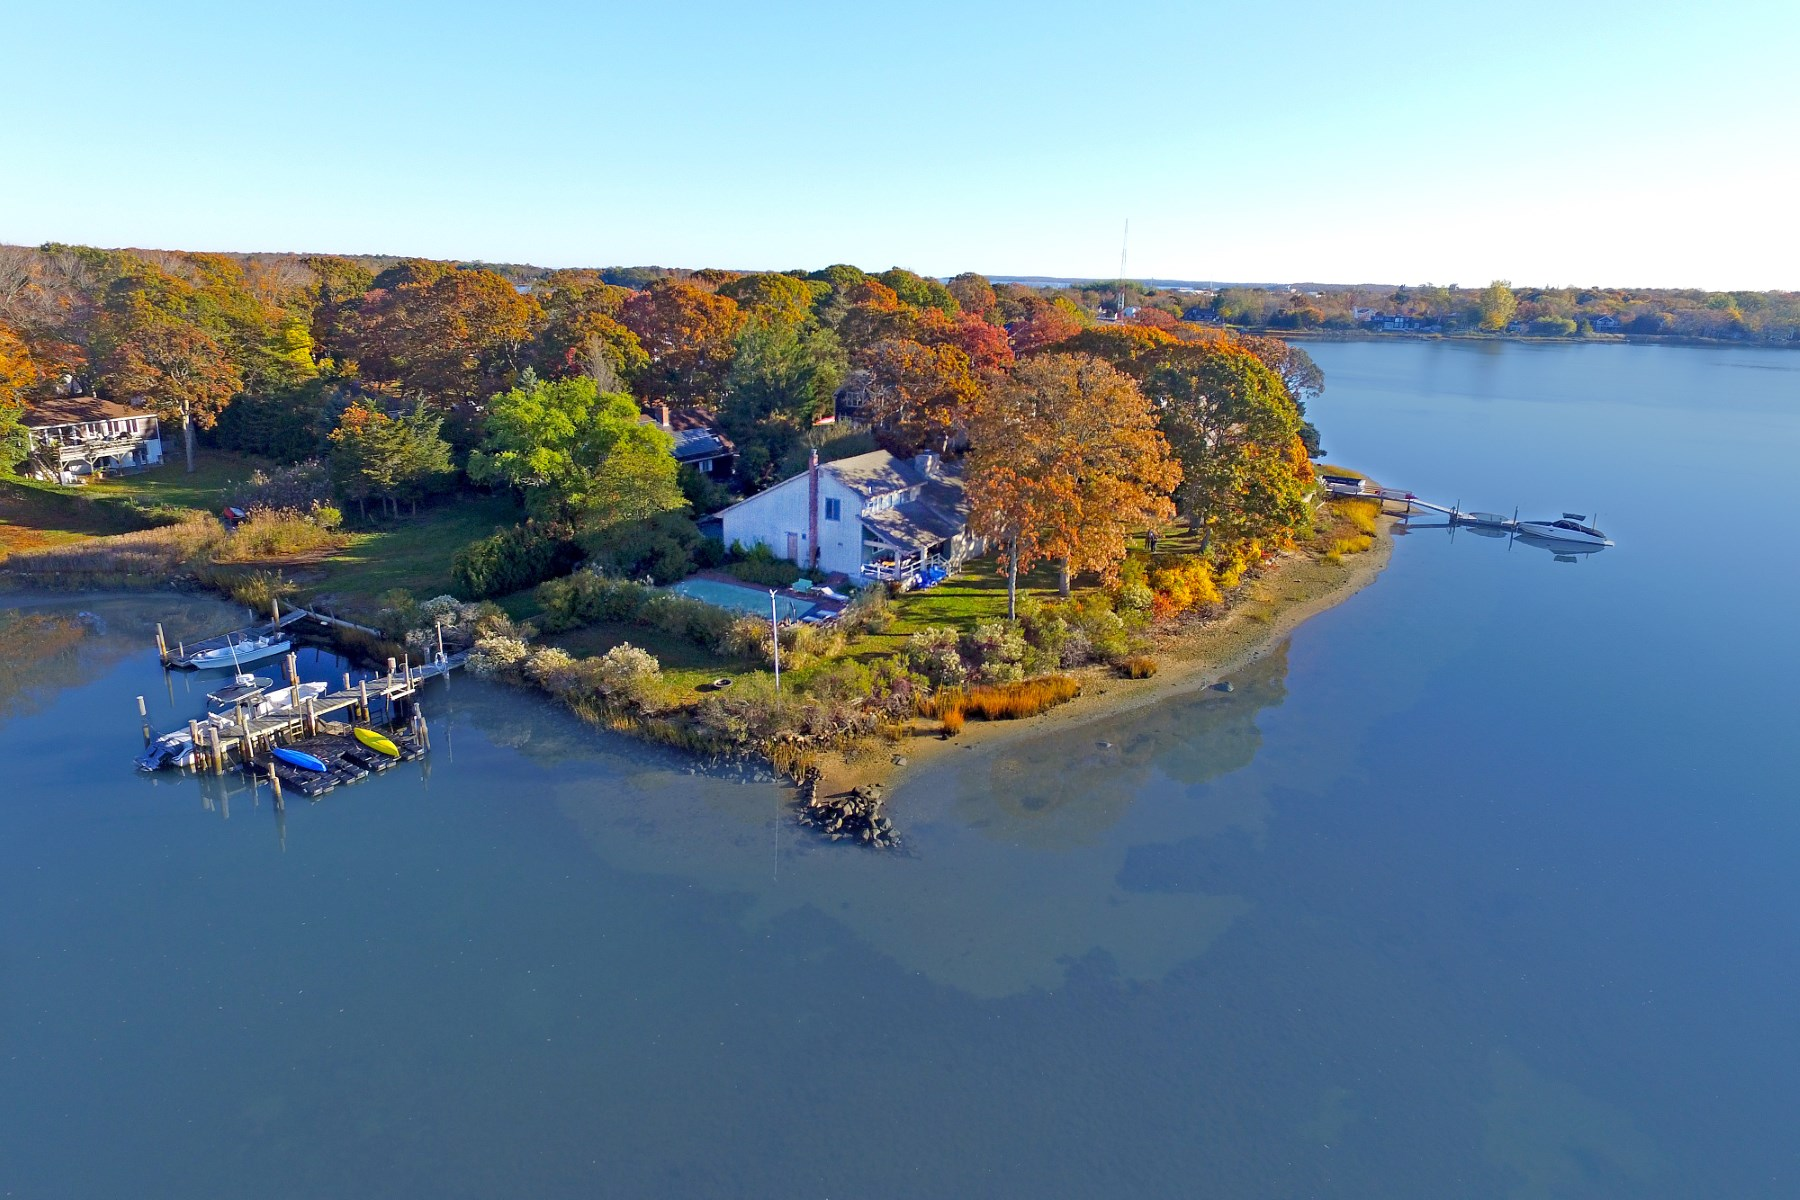 단독 가정 주택 용 매매 에 Dream Waterfront, Dock & Pool in Sag Harbor Village 10 Yale Rd Sag Harbor Village, Sag Harbor, 뉴욕 11963 미국